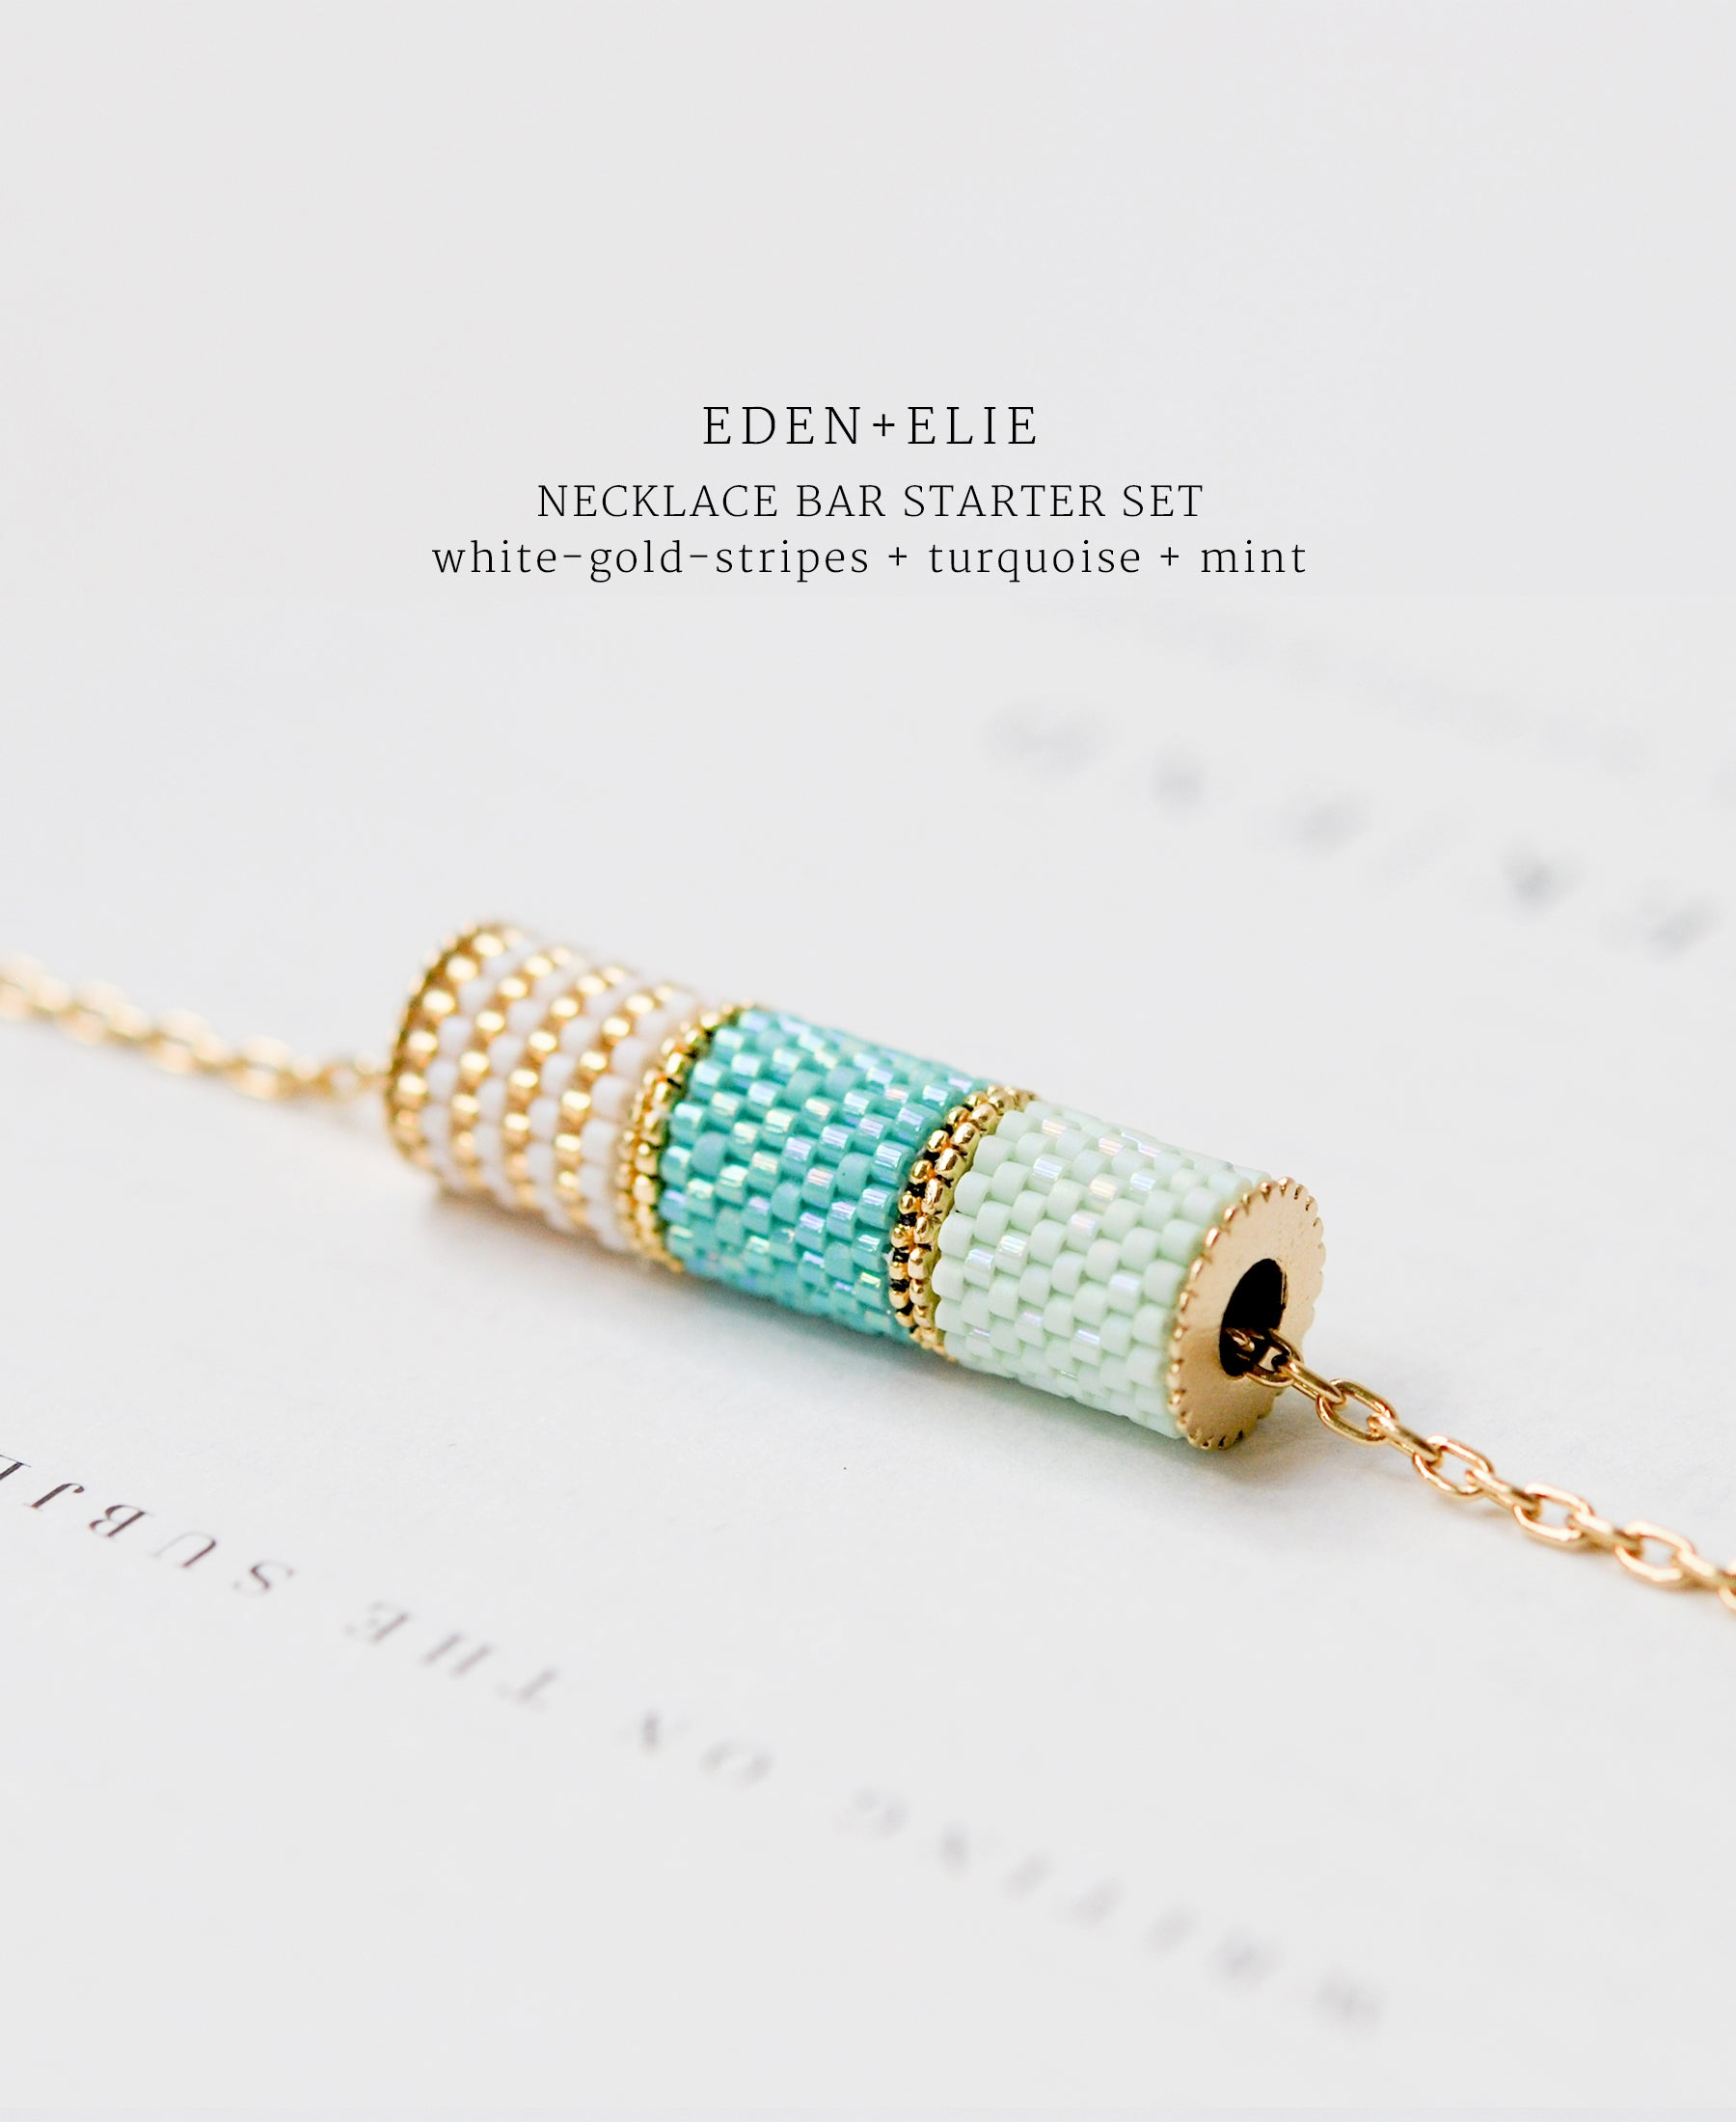 EDEN + ELIE Necklace Bar 3 bead starter set - mint + turquoise + white gold striped